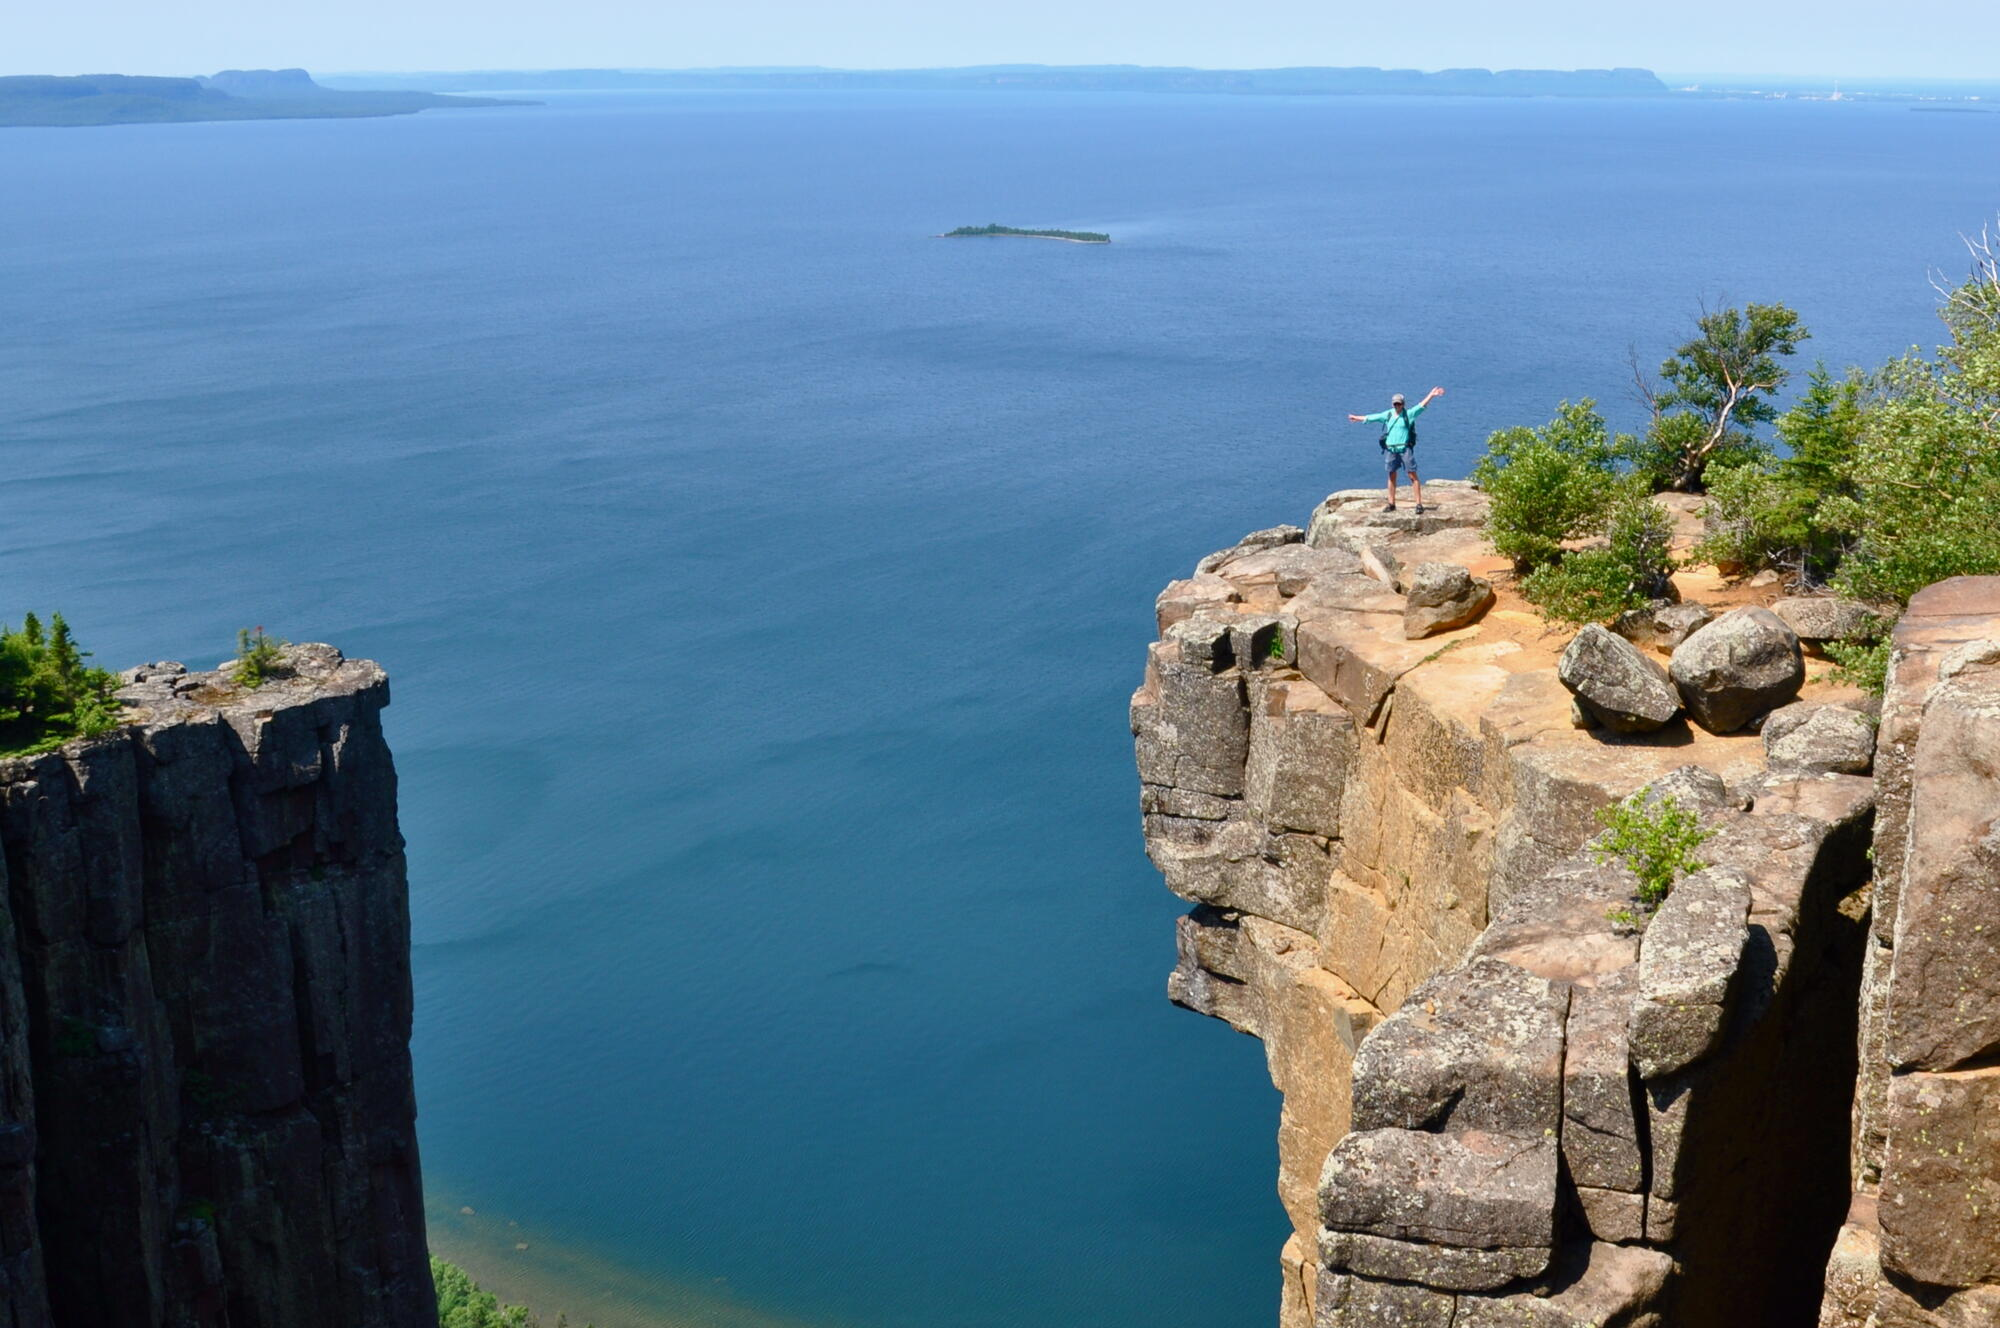 Hiking Top Of Giant Northern Ontario Travel